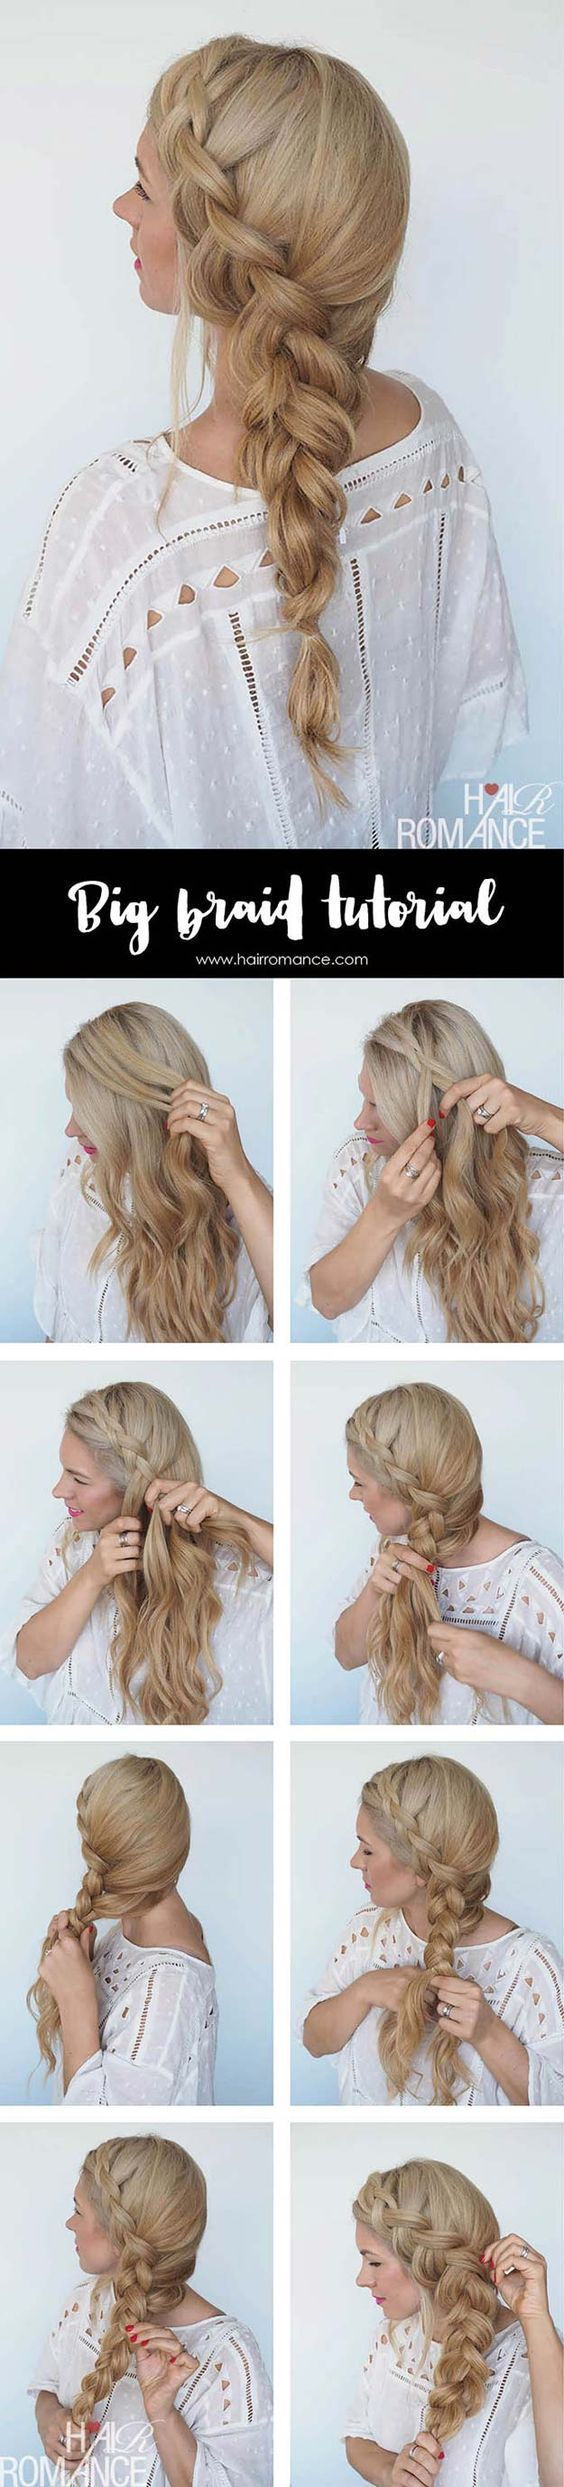 flawless and trending side braids styles to try out the one